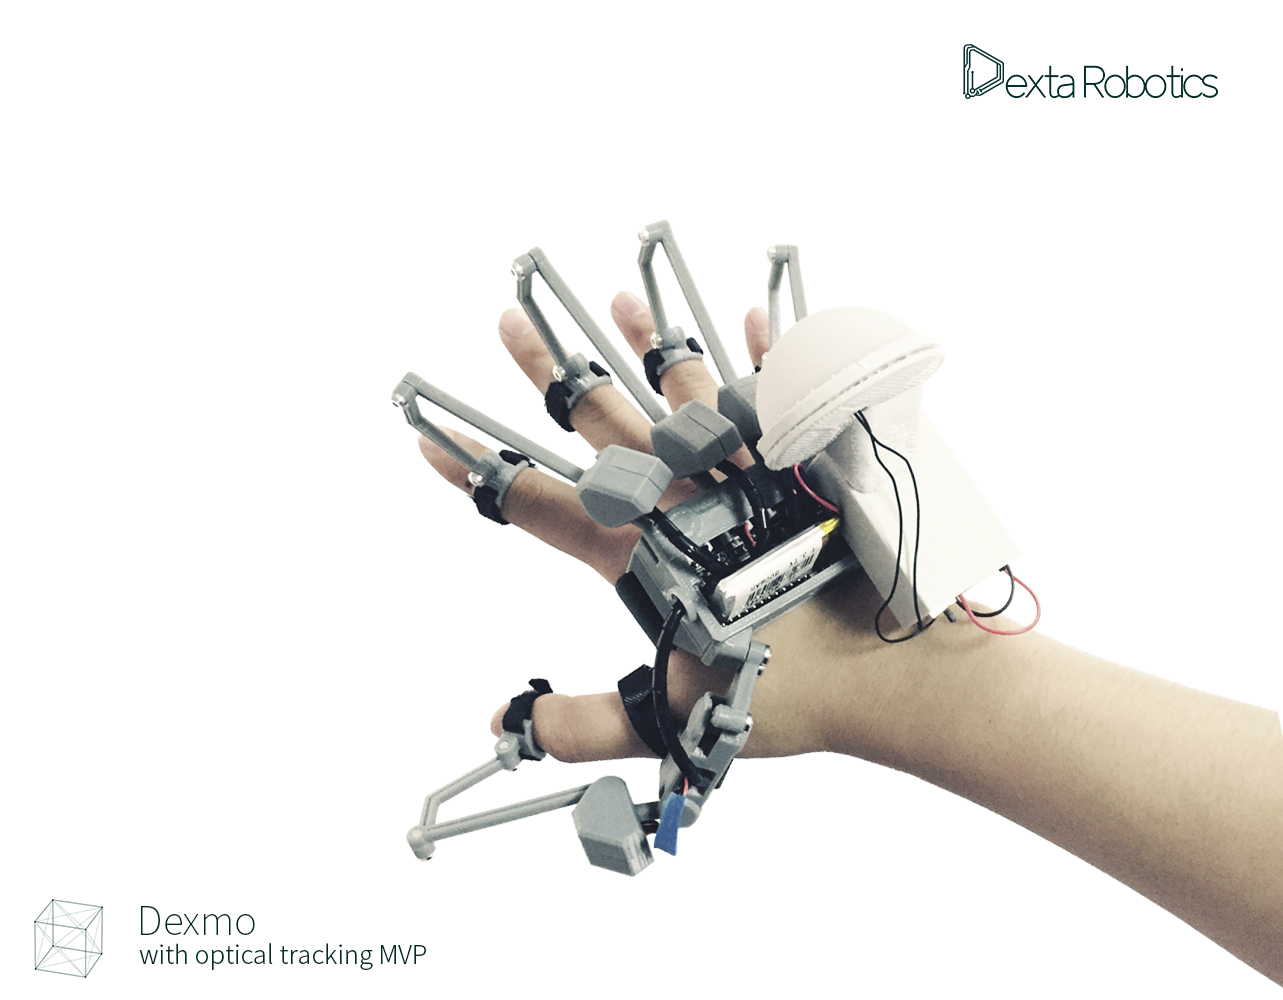 19cb11ba1010 Latest Dexmo Input Glove Features Positional Tracking with Full ...